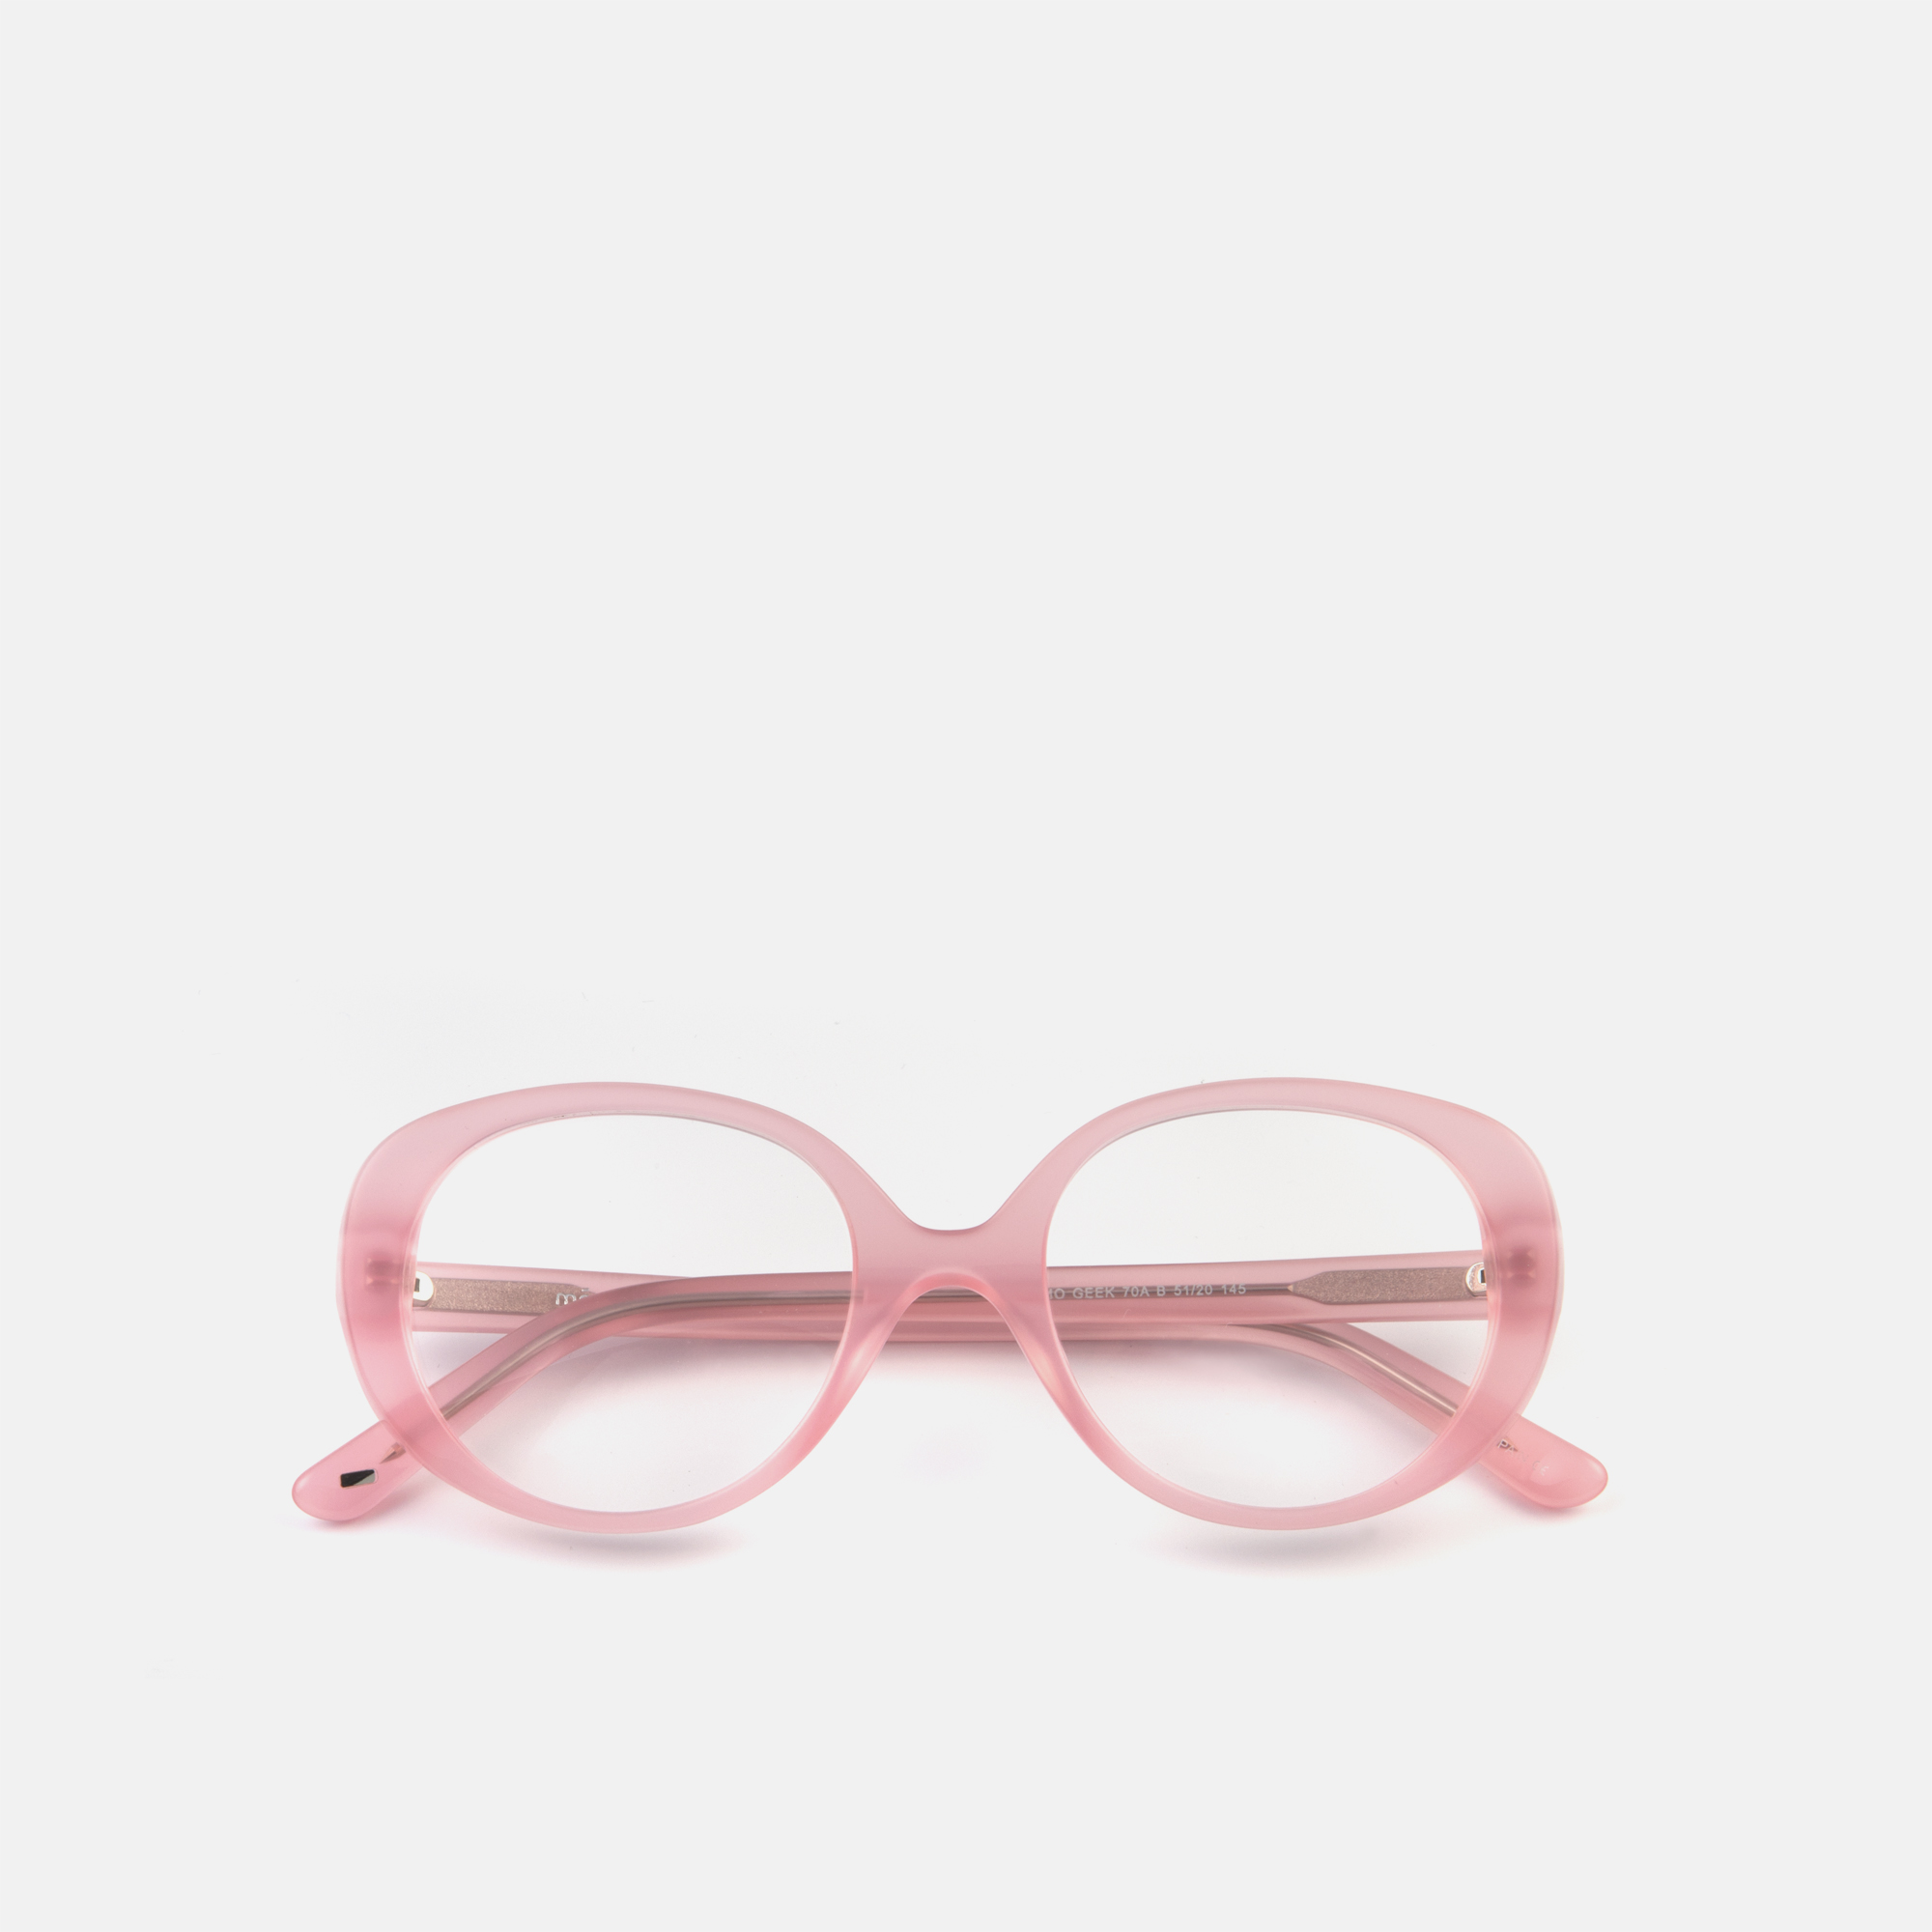 mó geek 70A B, light pink, hi-res